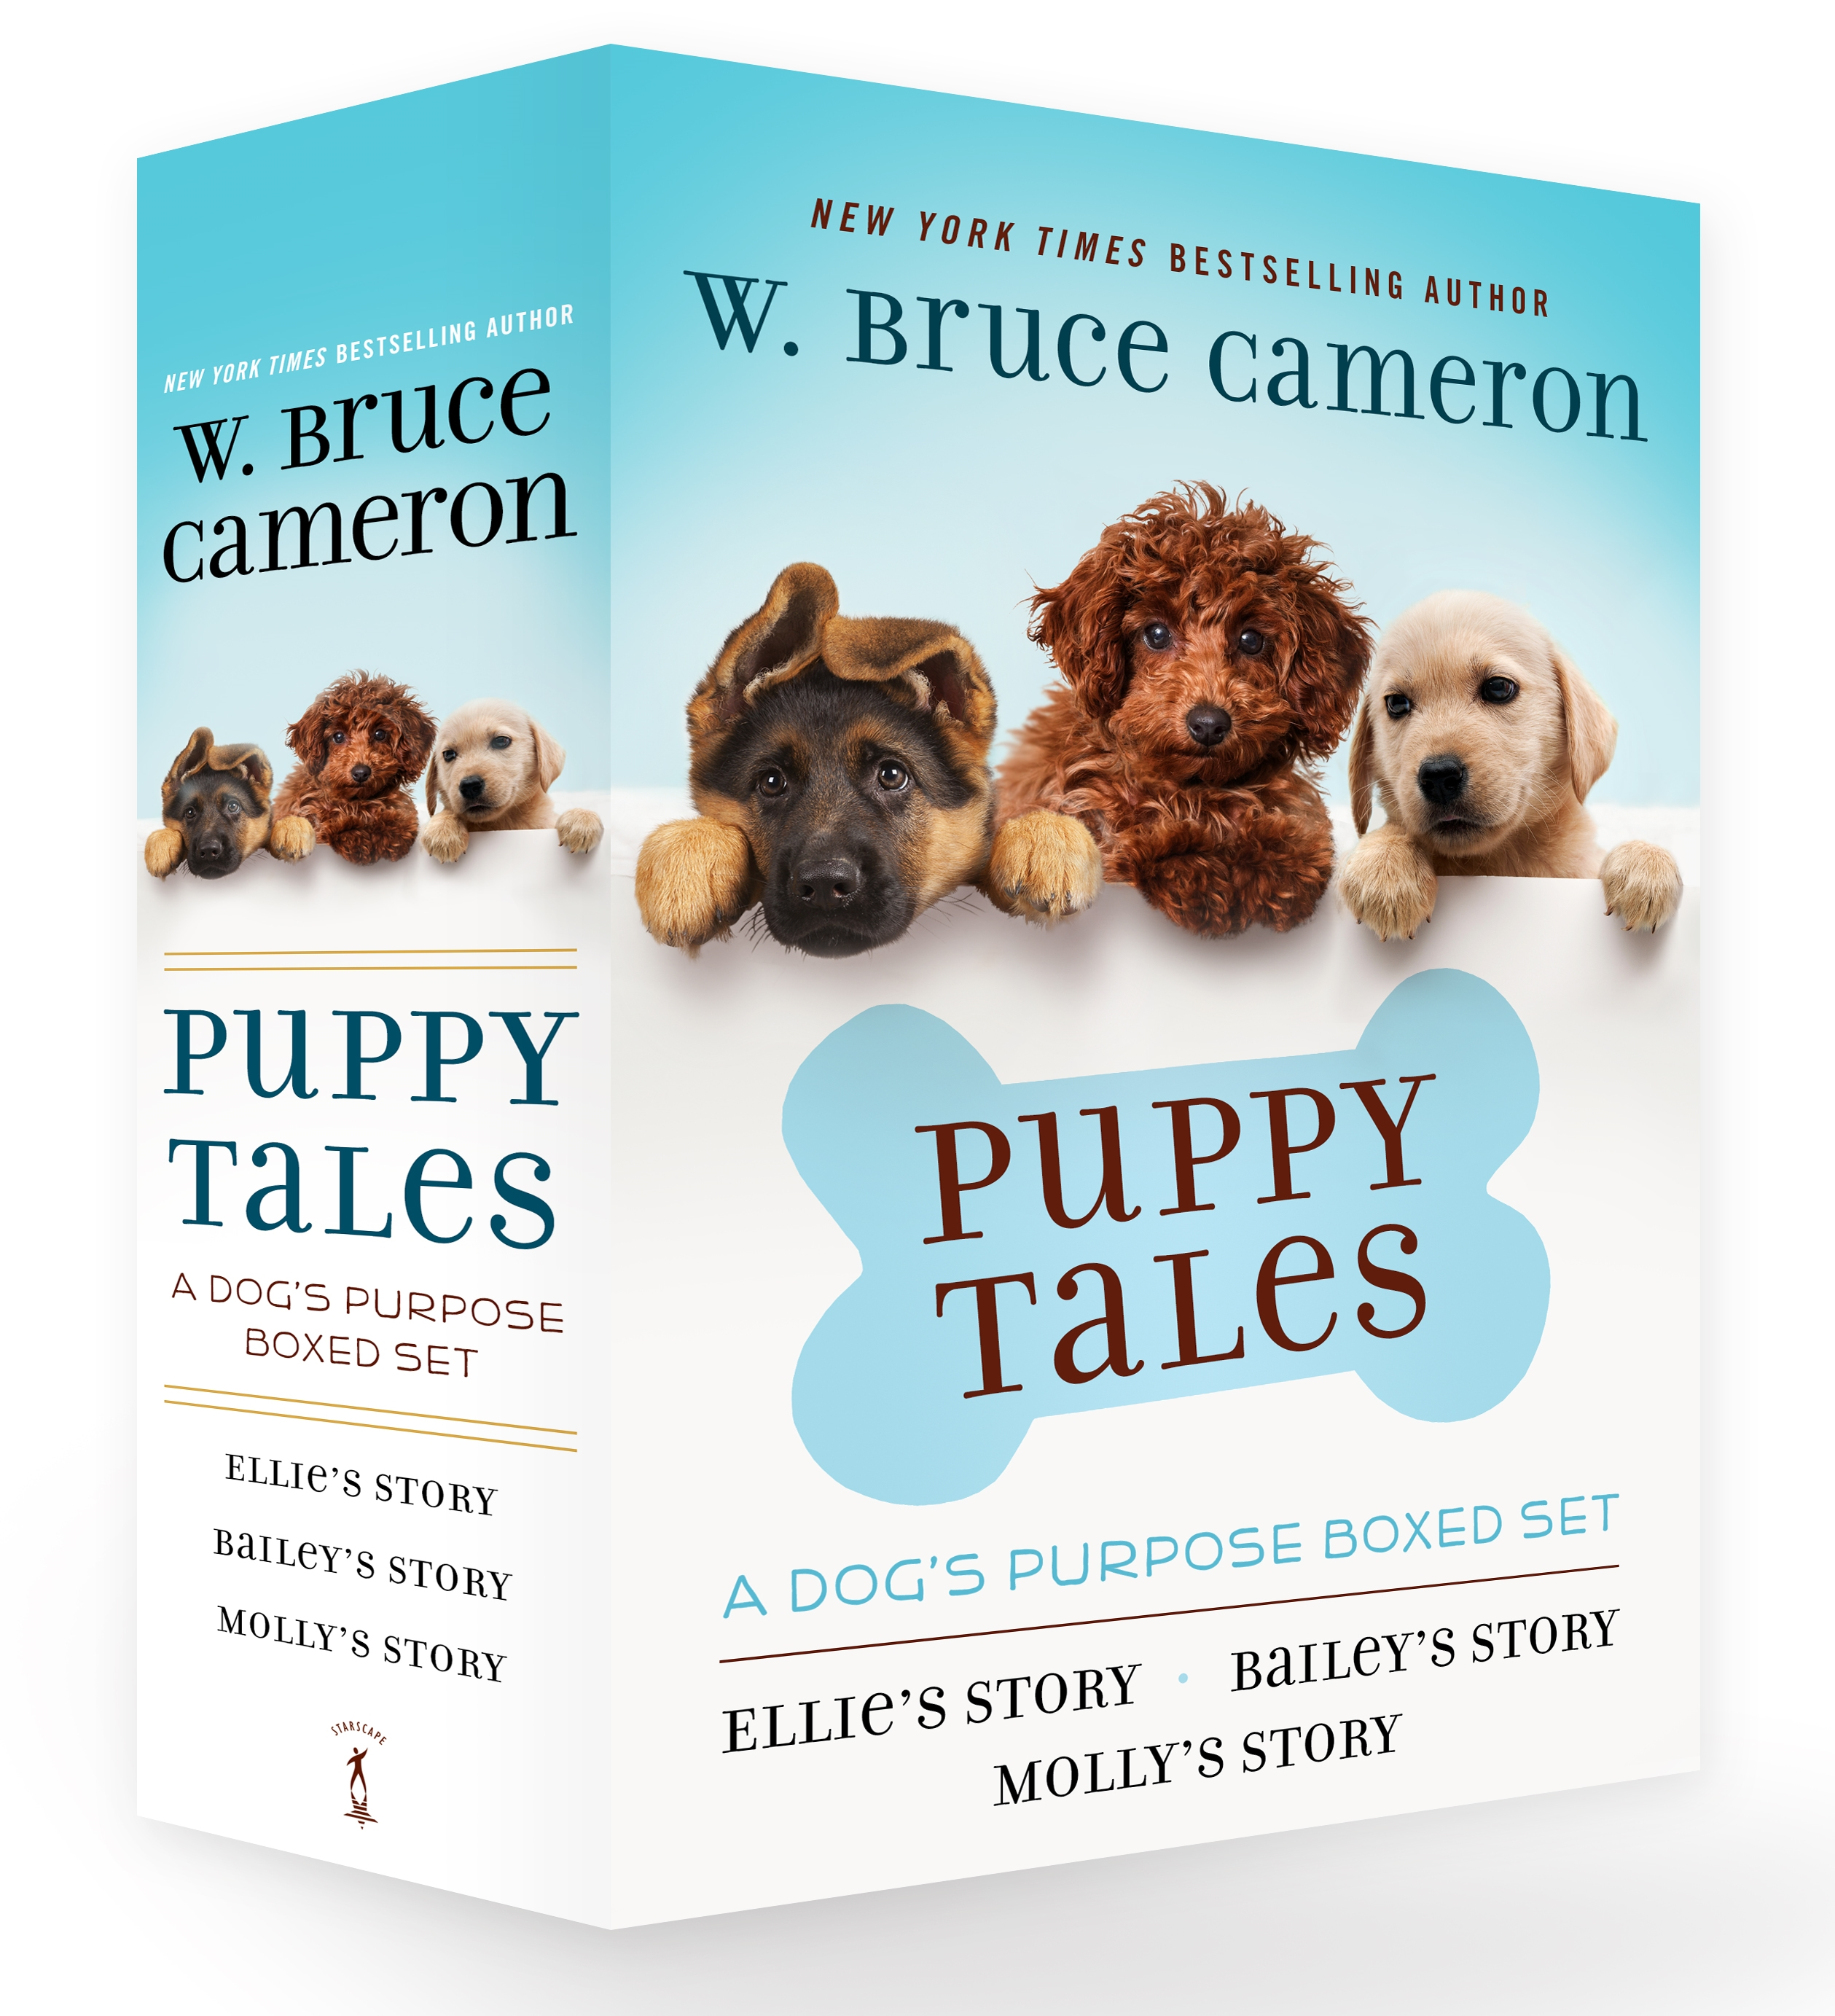 Puppy Tales: A Dog's Purpose Boxed Set : Ellie's Story, Bailey's Story, and Molly's Story